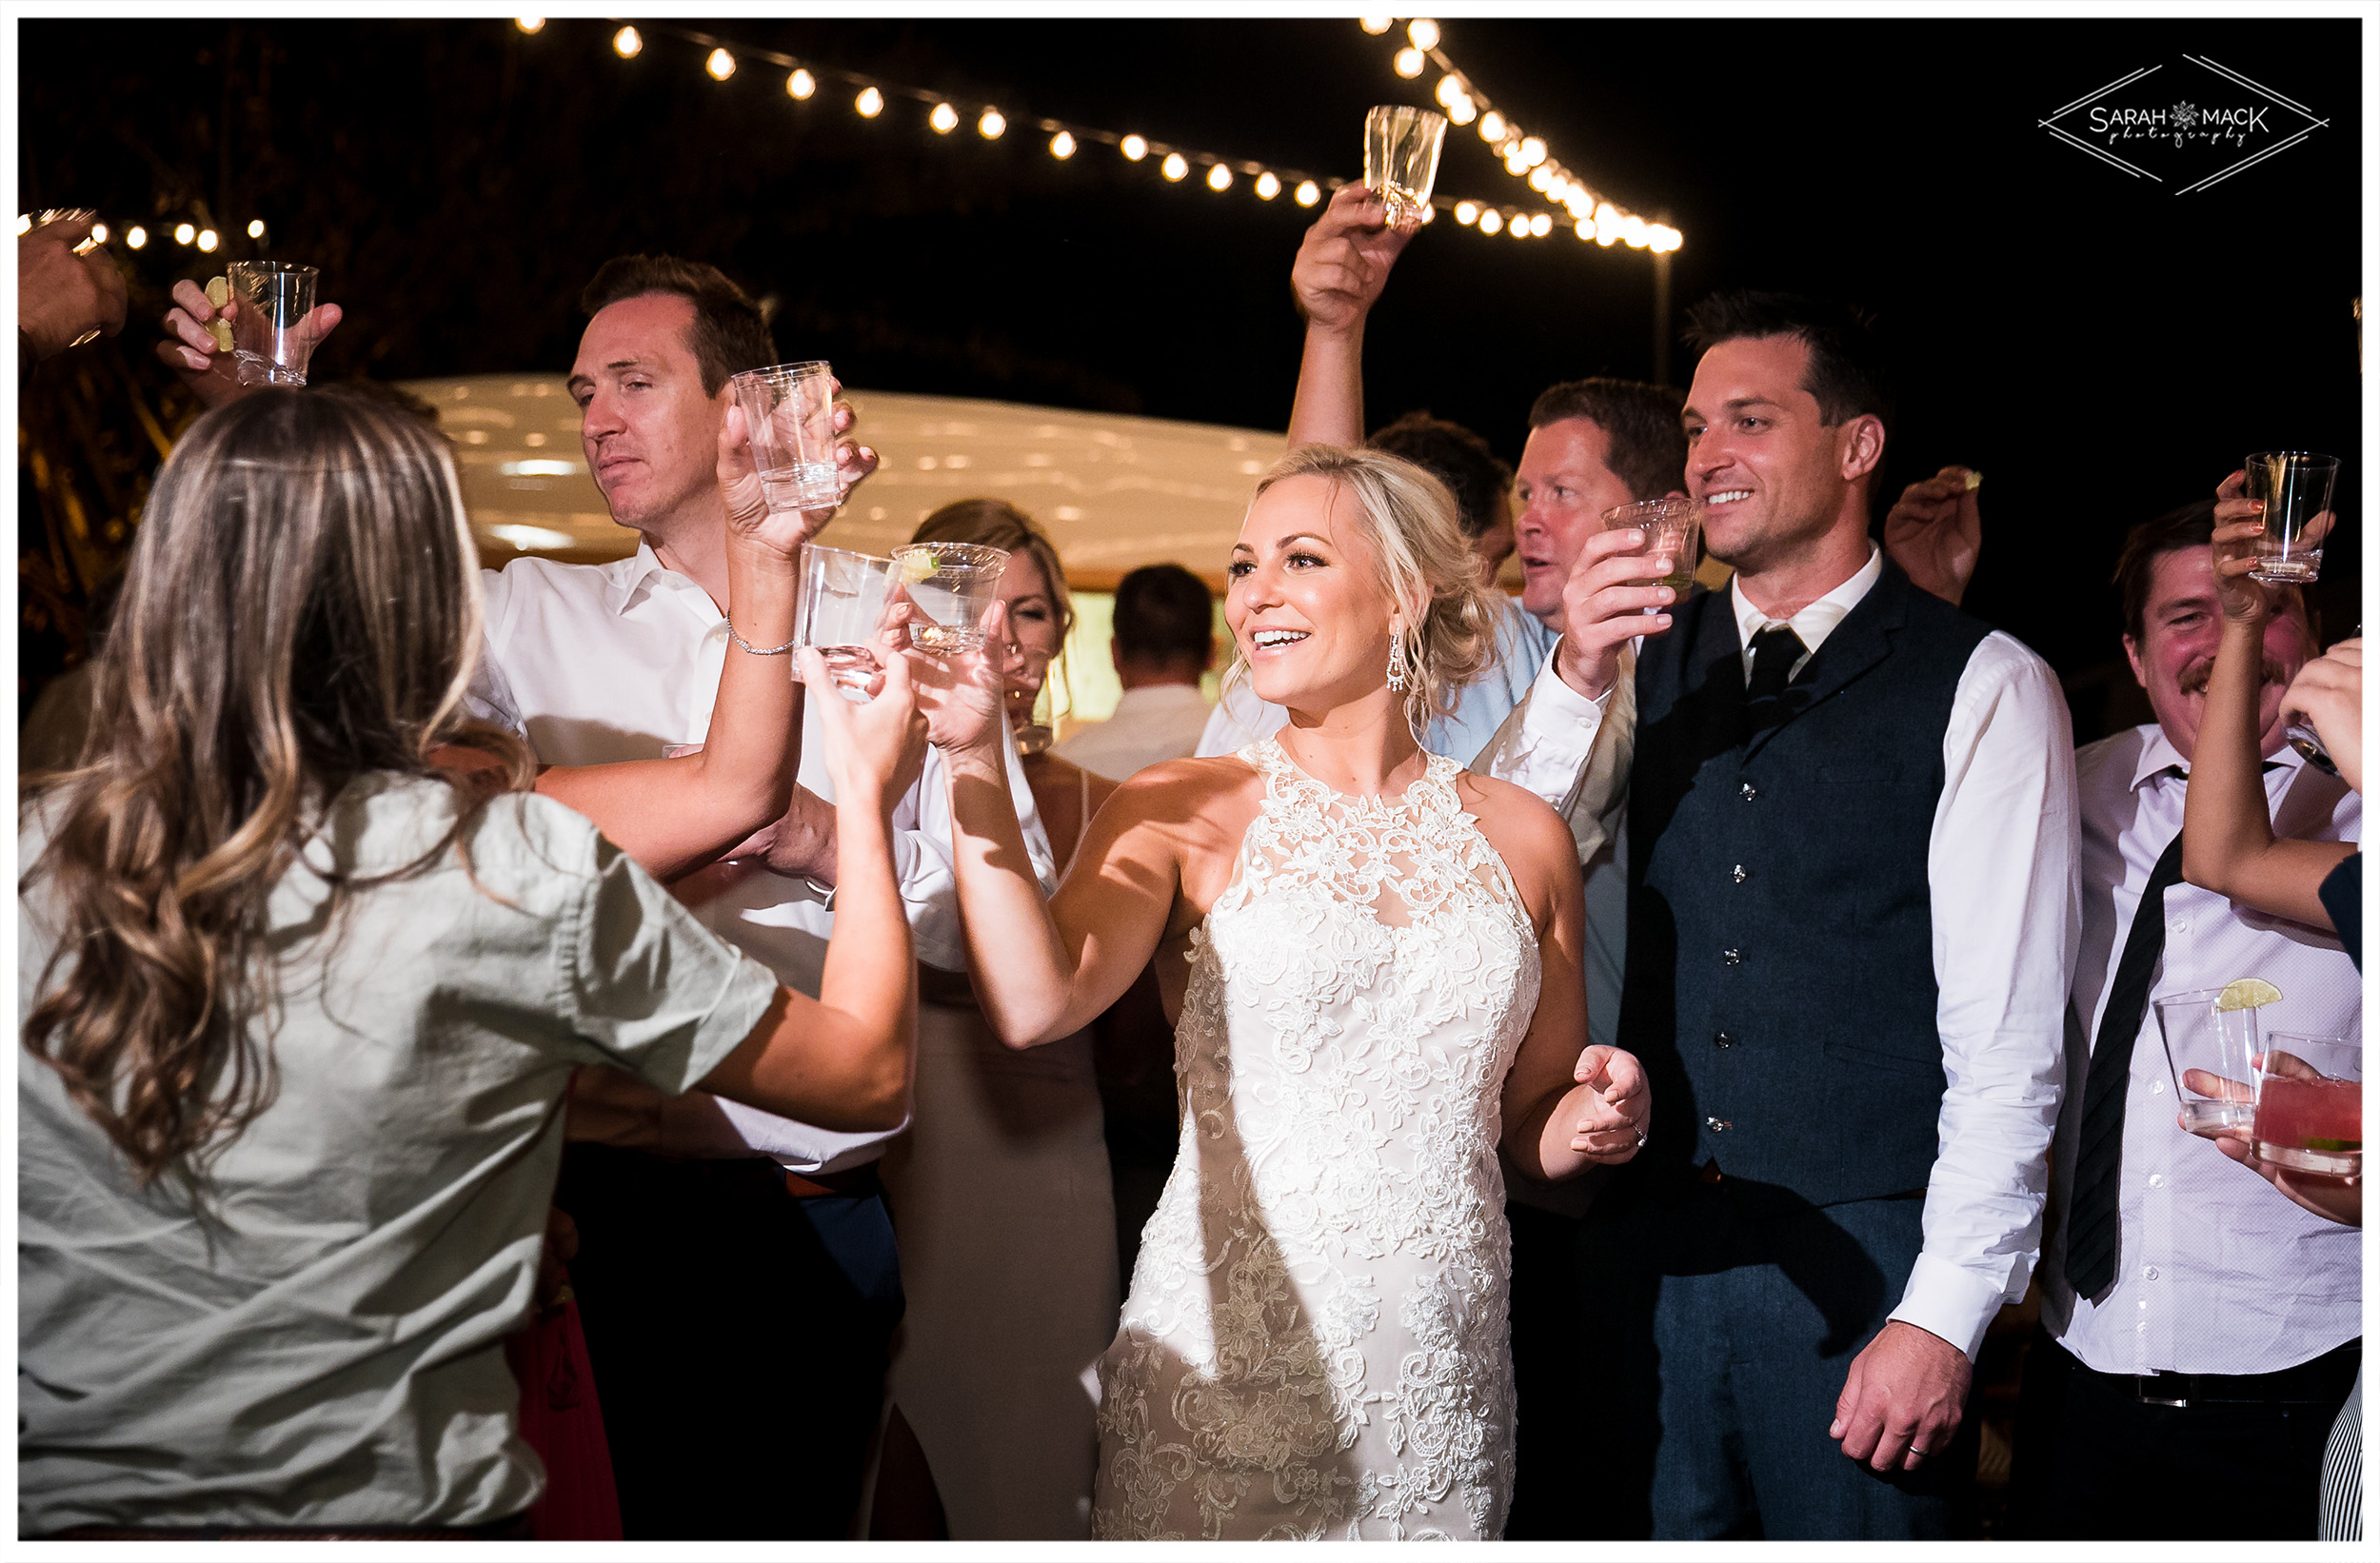 MA-Chandler-Ranch-Paso-Robles-Wedding-Photography-79.jpg